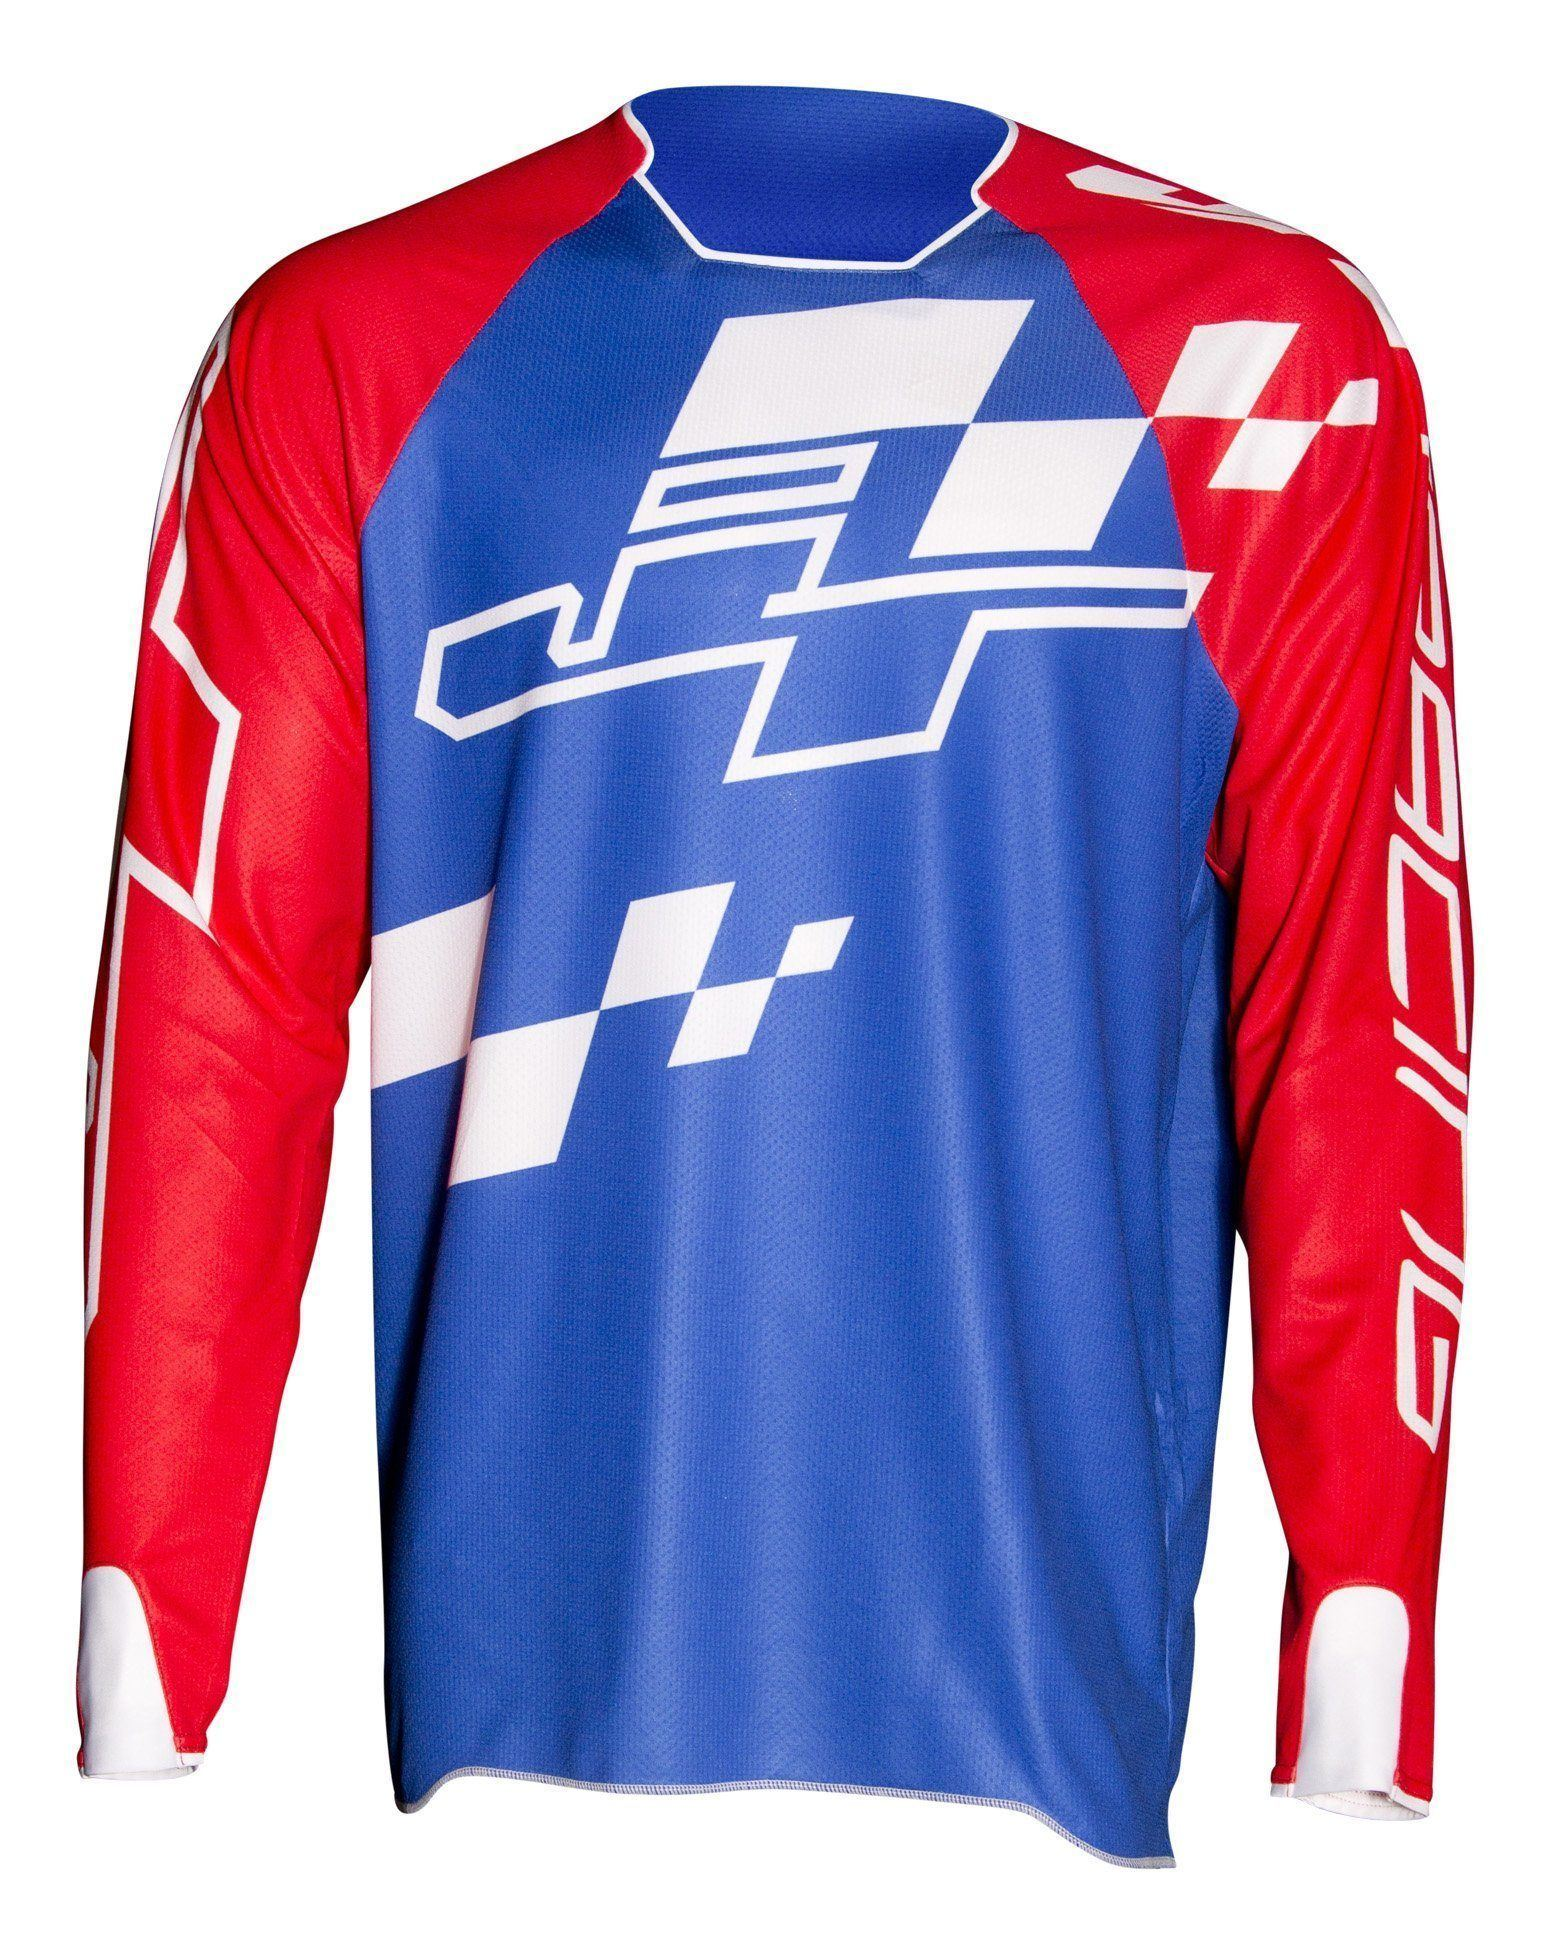 Hyperlite Checker RWB Jersey